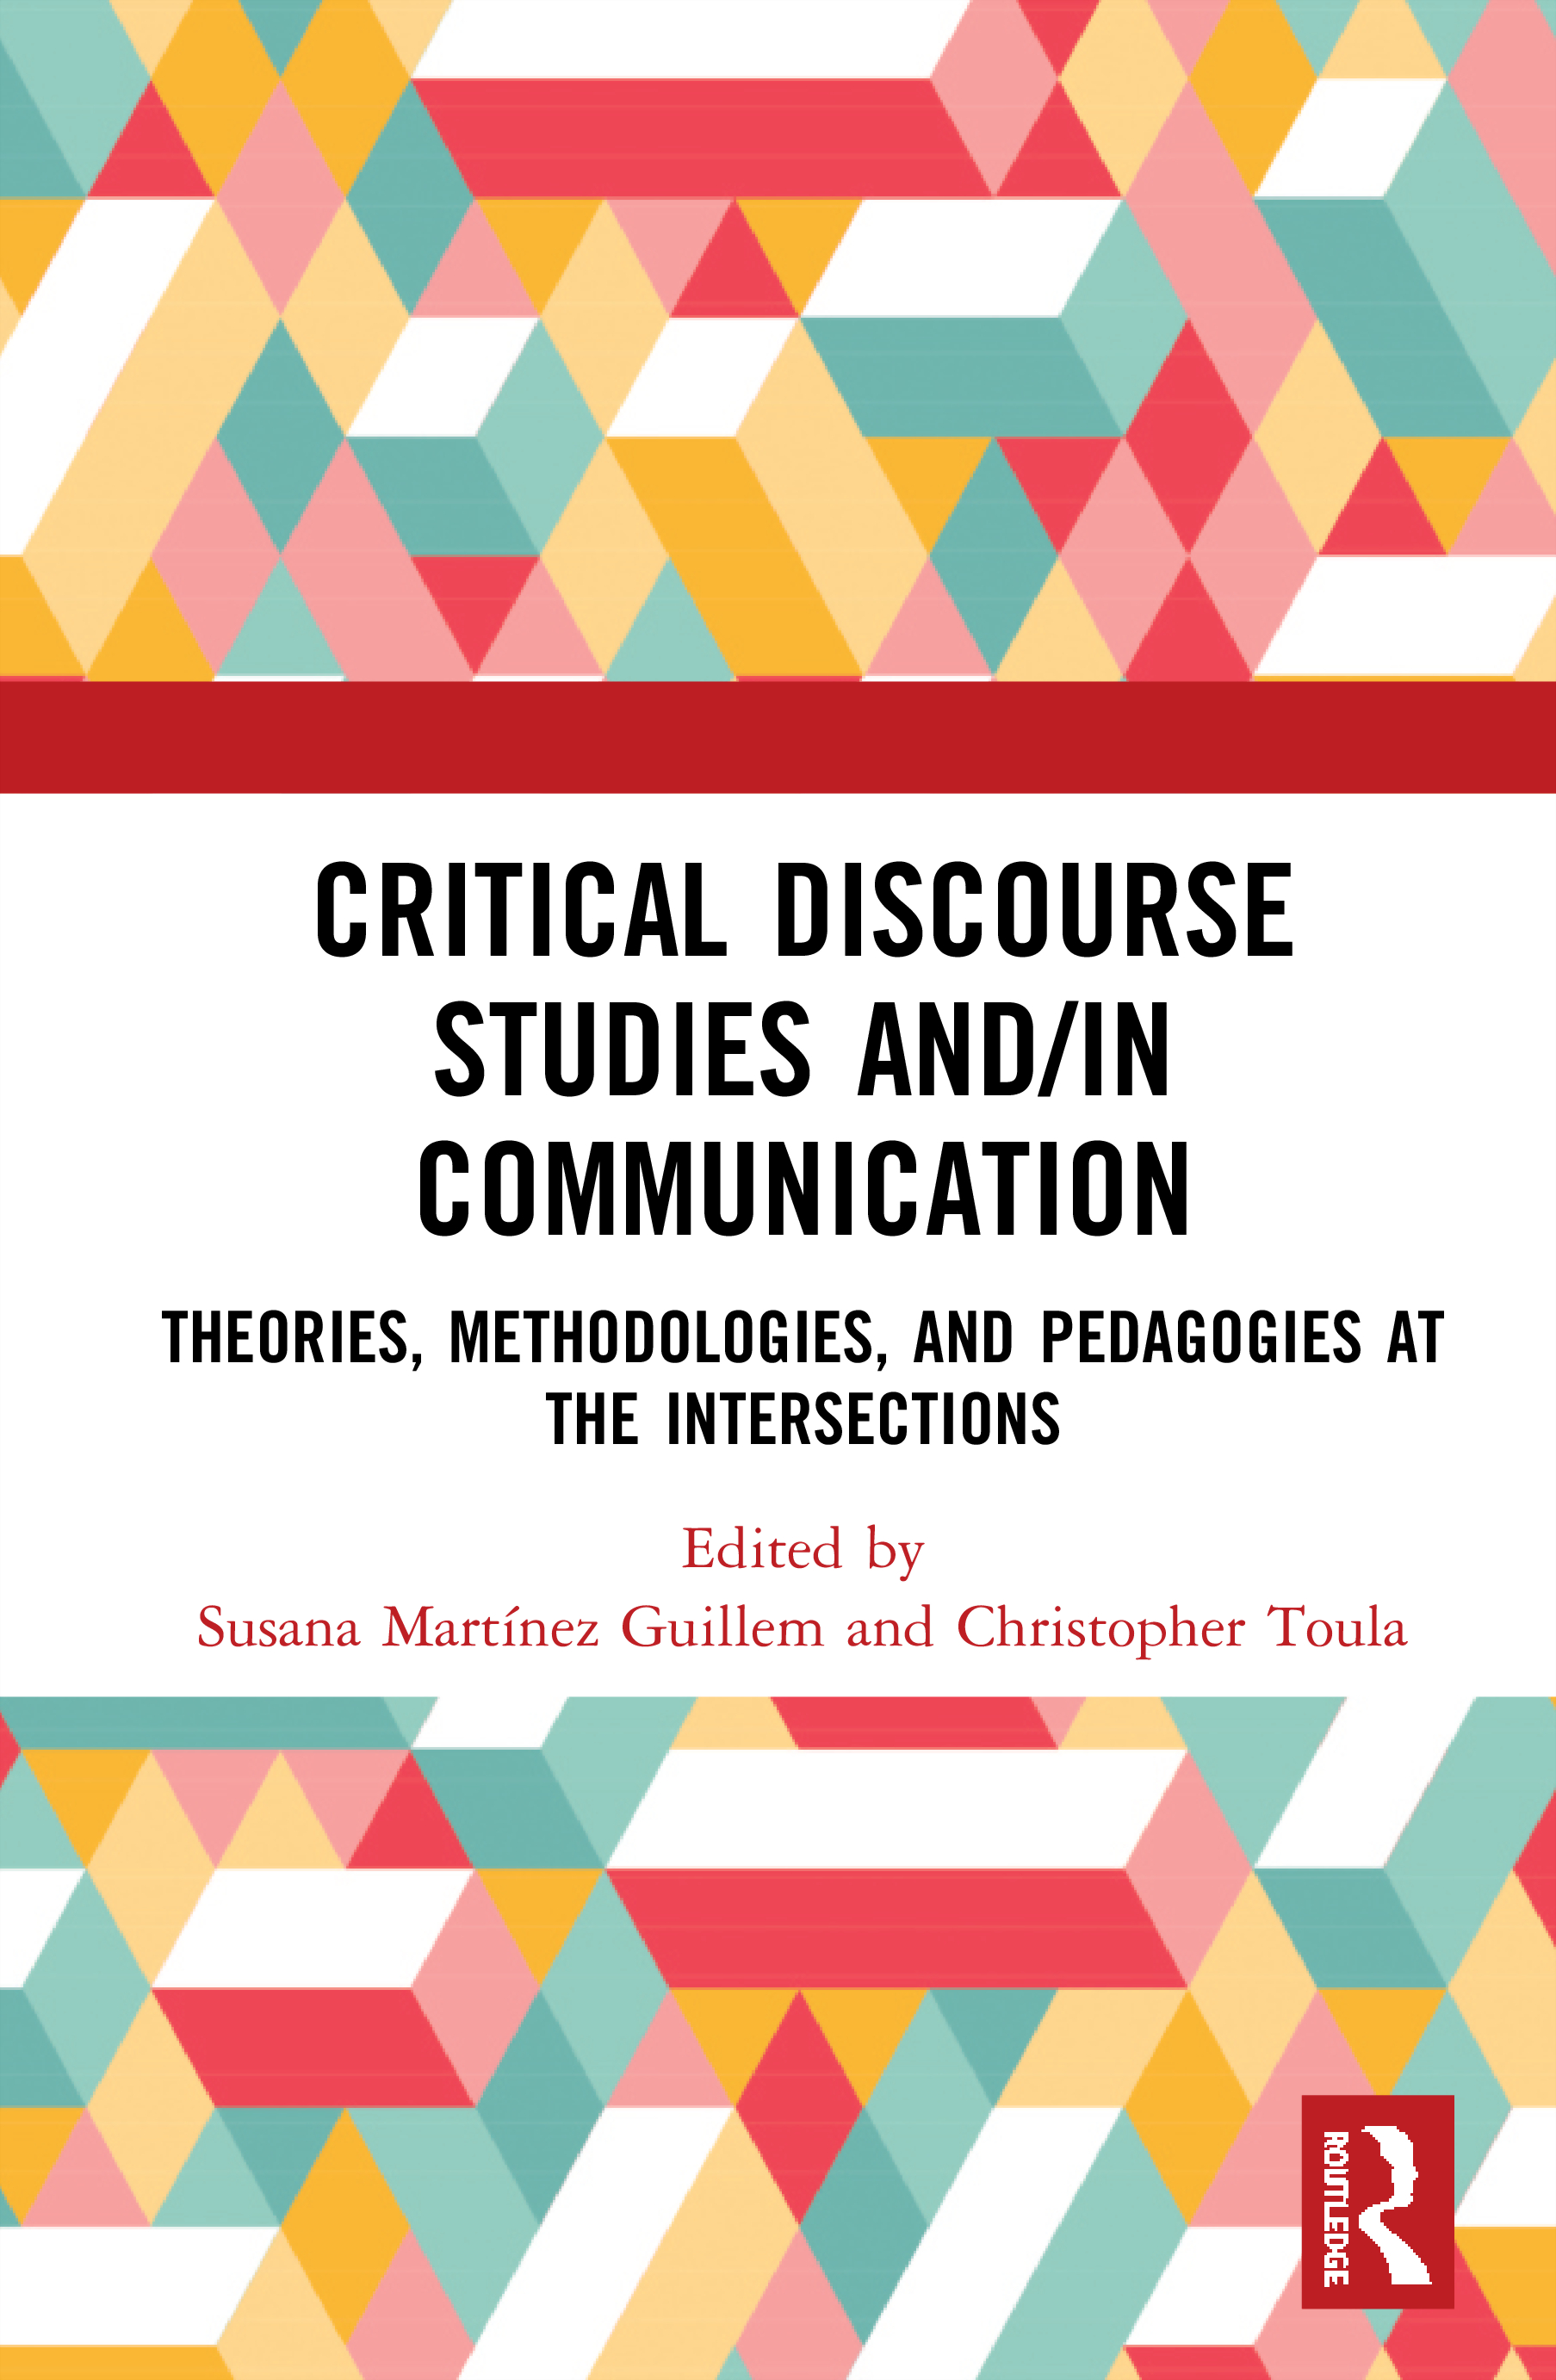 Critical Discourse Studies and/in Communication: Theories, Methodologies, and Pedagogies at the Intersections, 1st Edition (Hardback) book cover